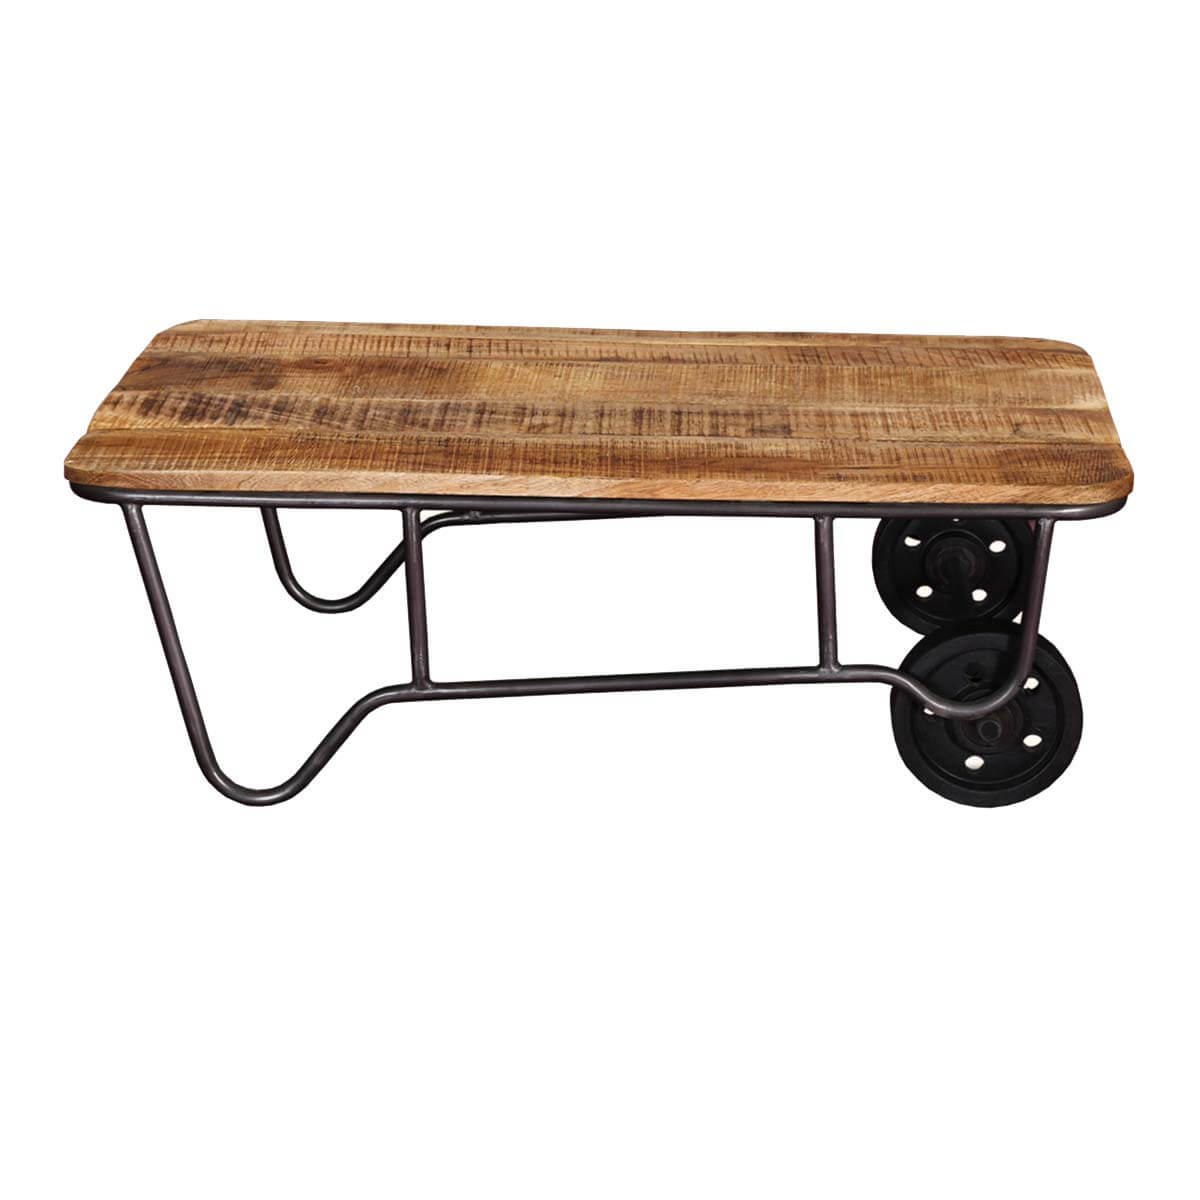 Industrial rustic mango wood iron rolling coffee table Rustic wooden coffee tables